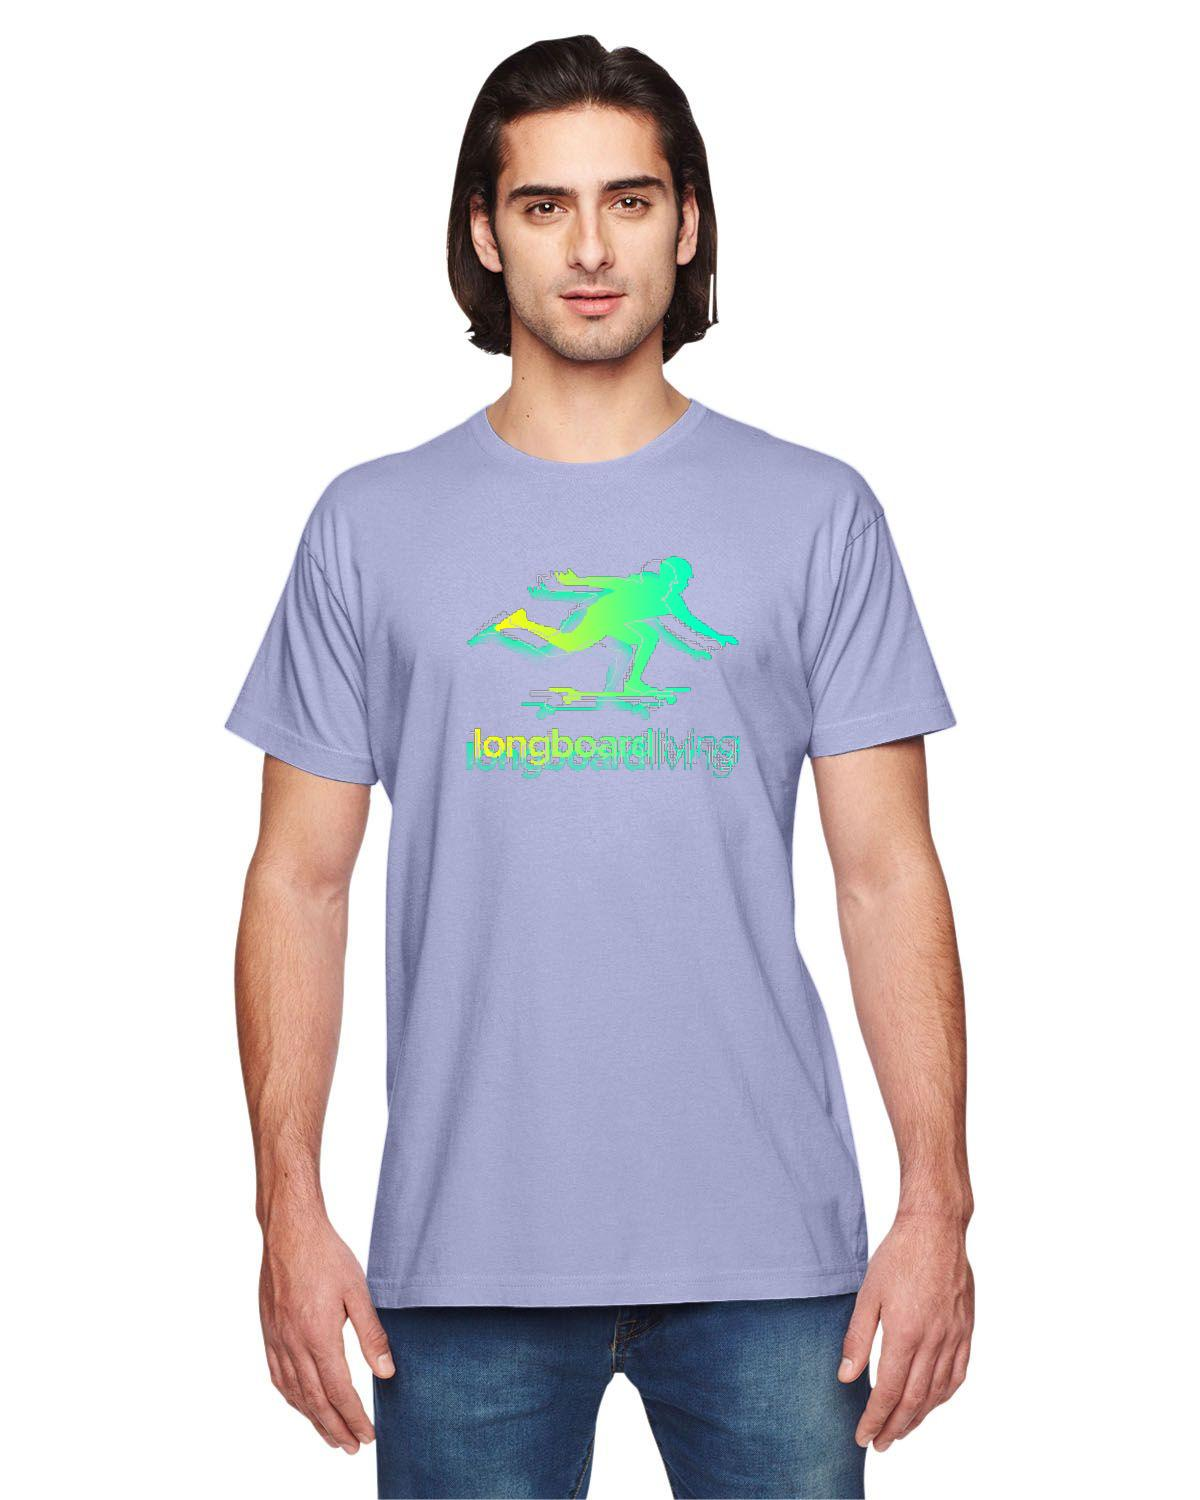 Longboard Living Stencil Shirt - Green / Yellow Fade